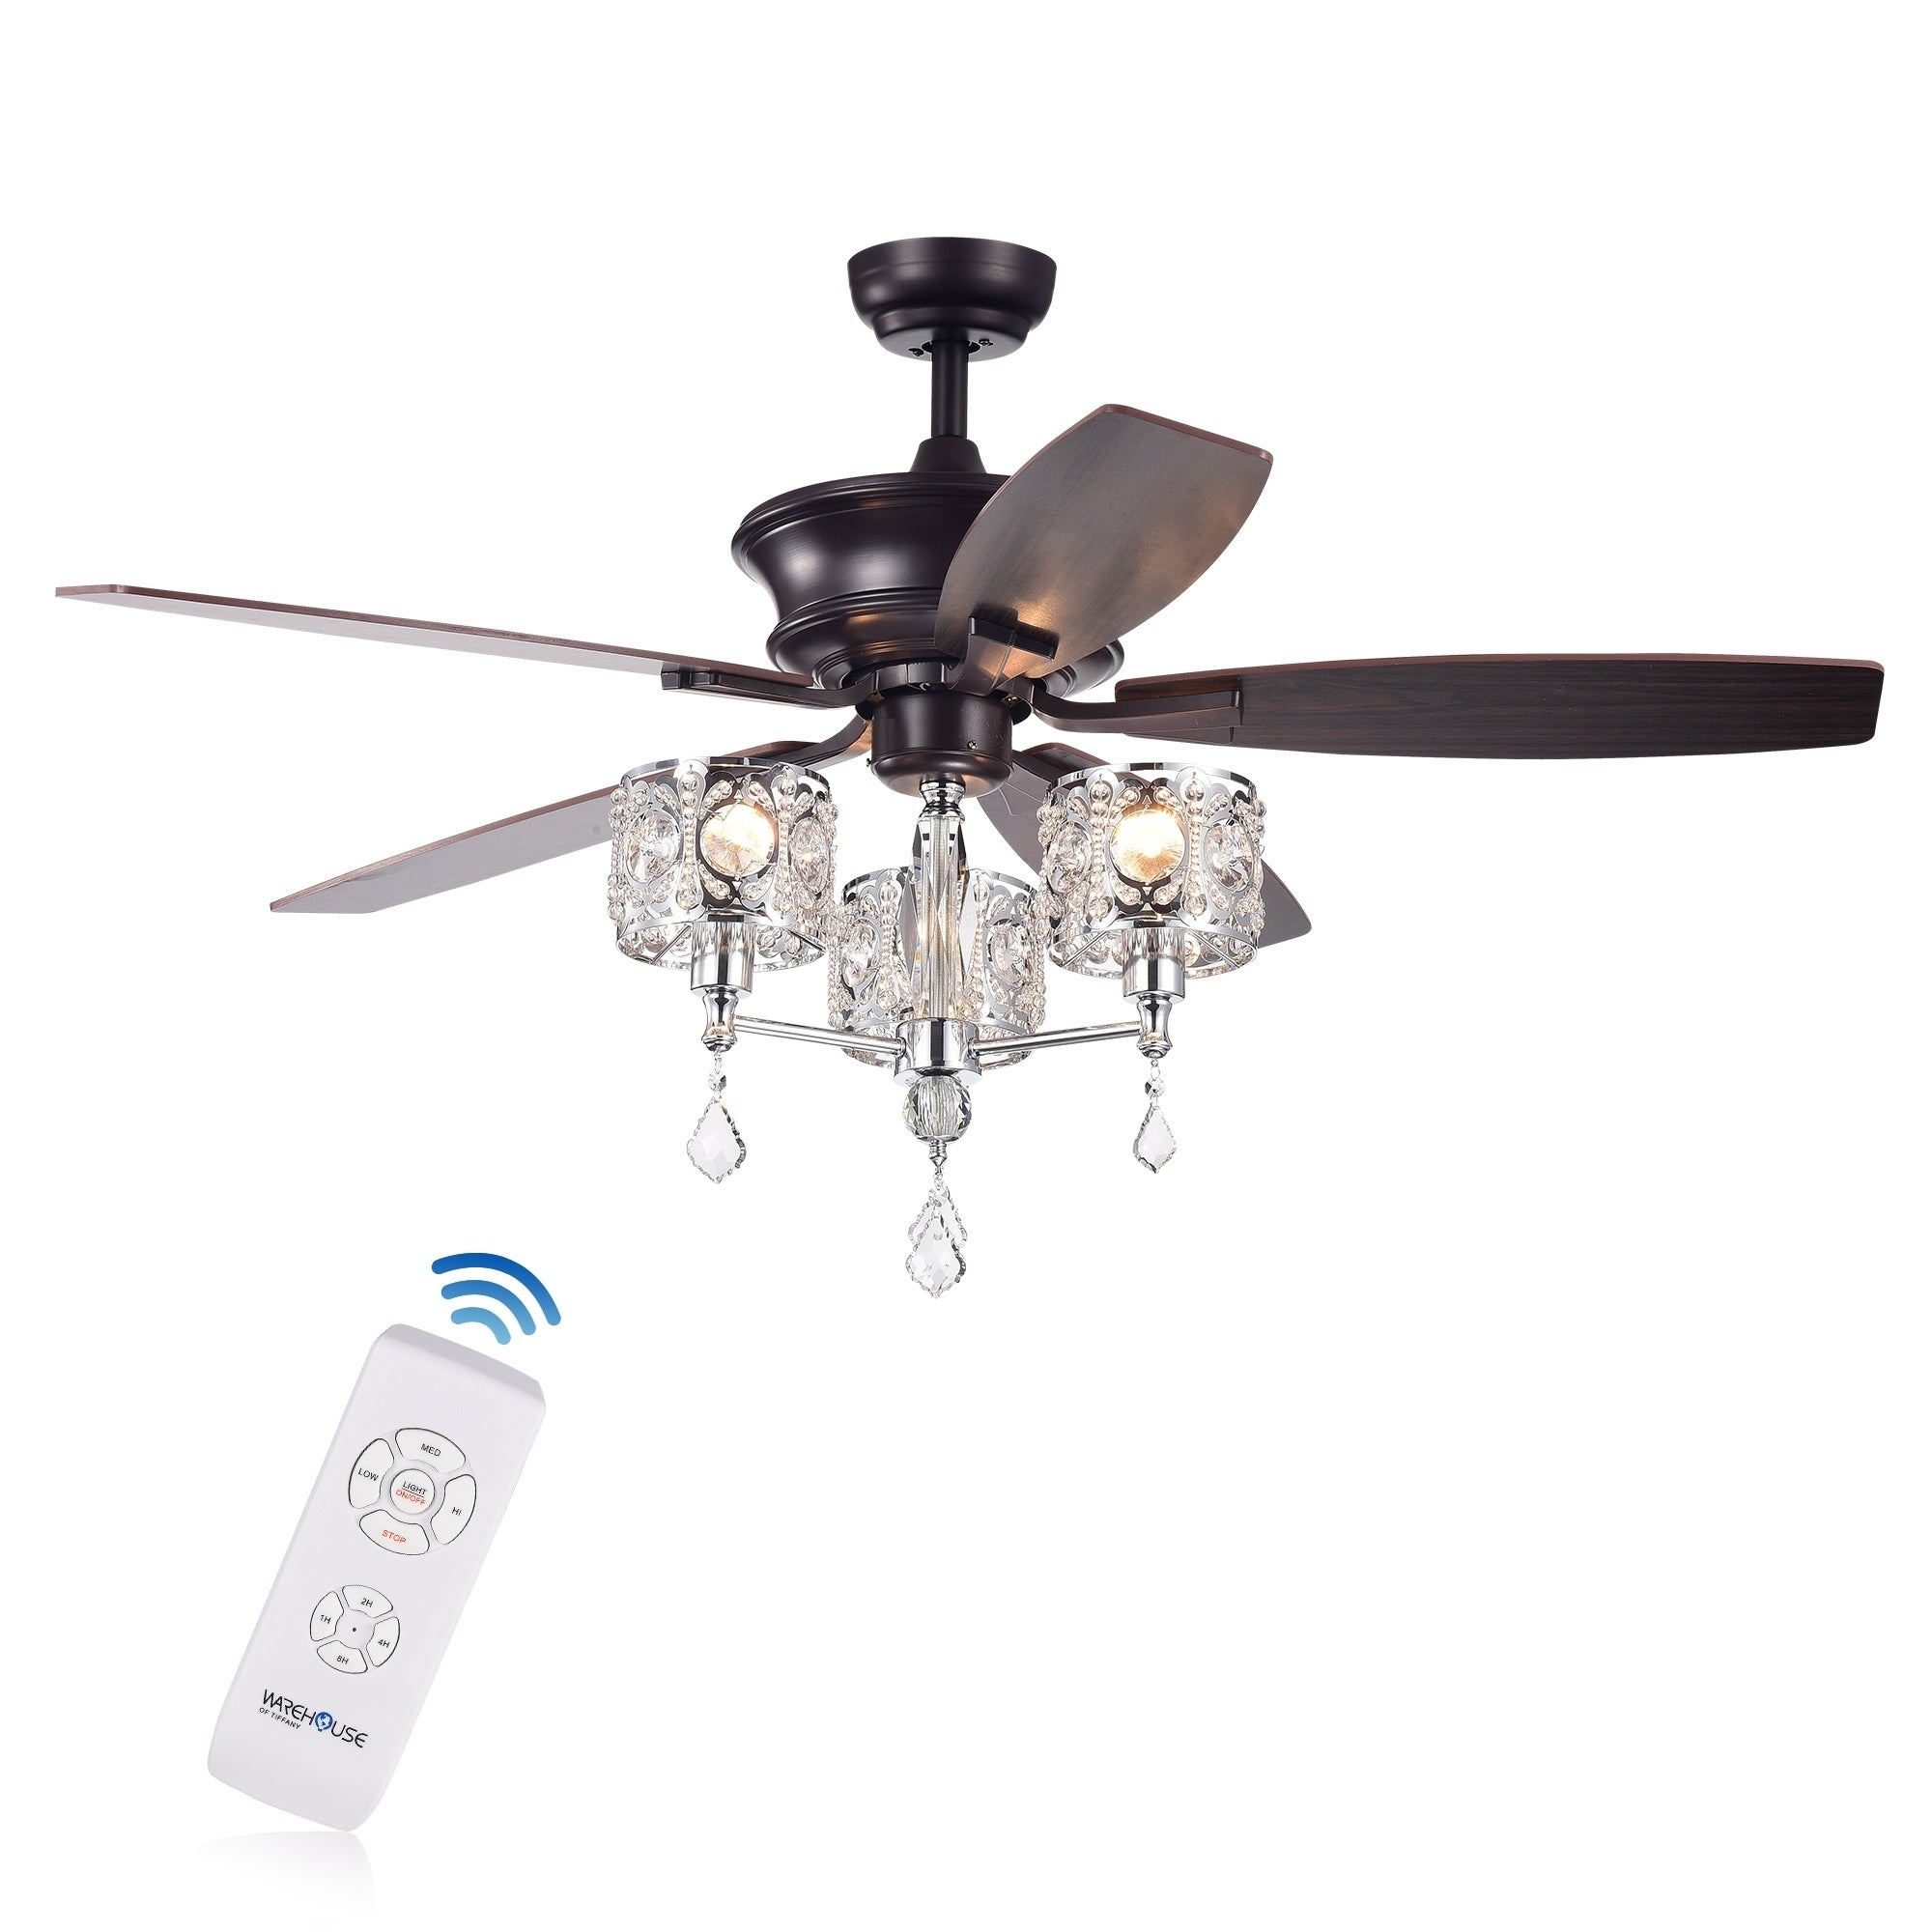 Tibedo 5 Blade 52 Inch Dark Brown Ceiling Fan With 3 Light Crystal And Chrome Chalice Chandelier Remote Controlled On Free Shipping Today